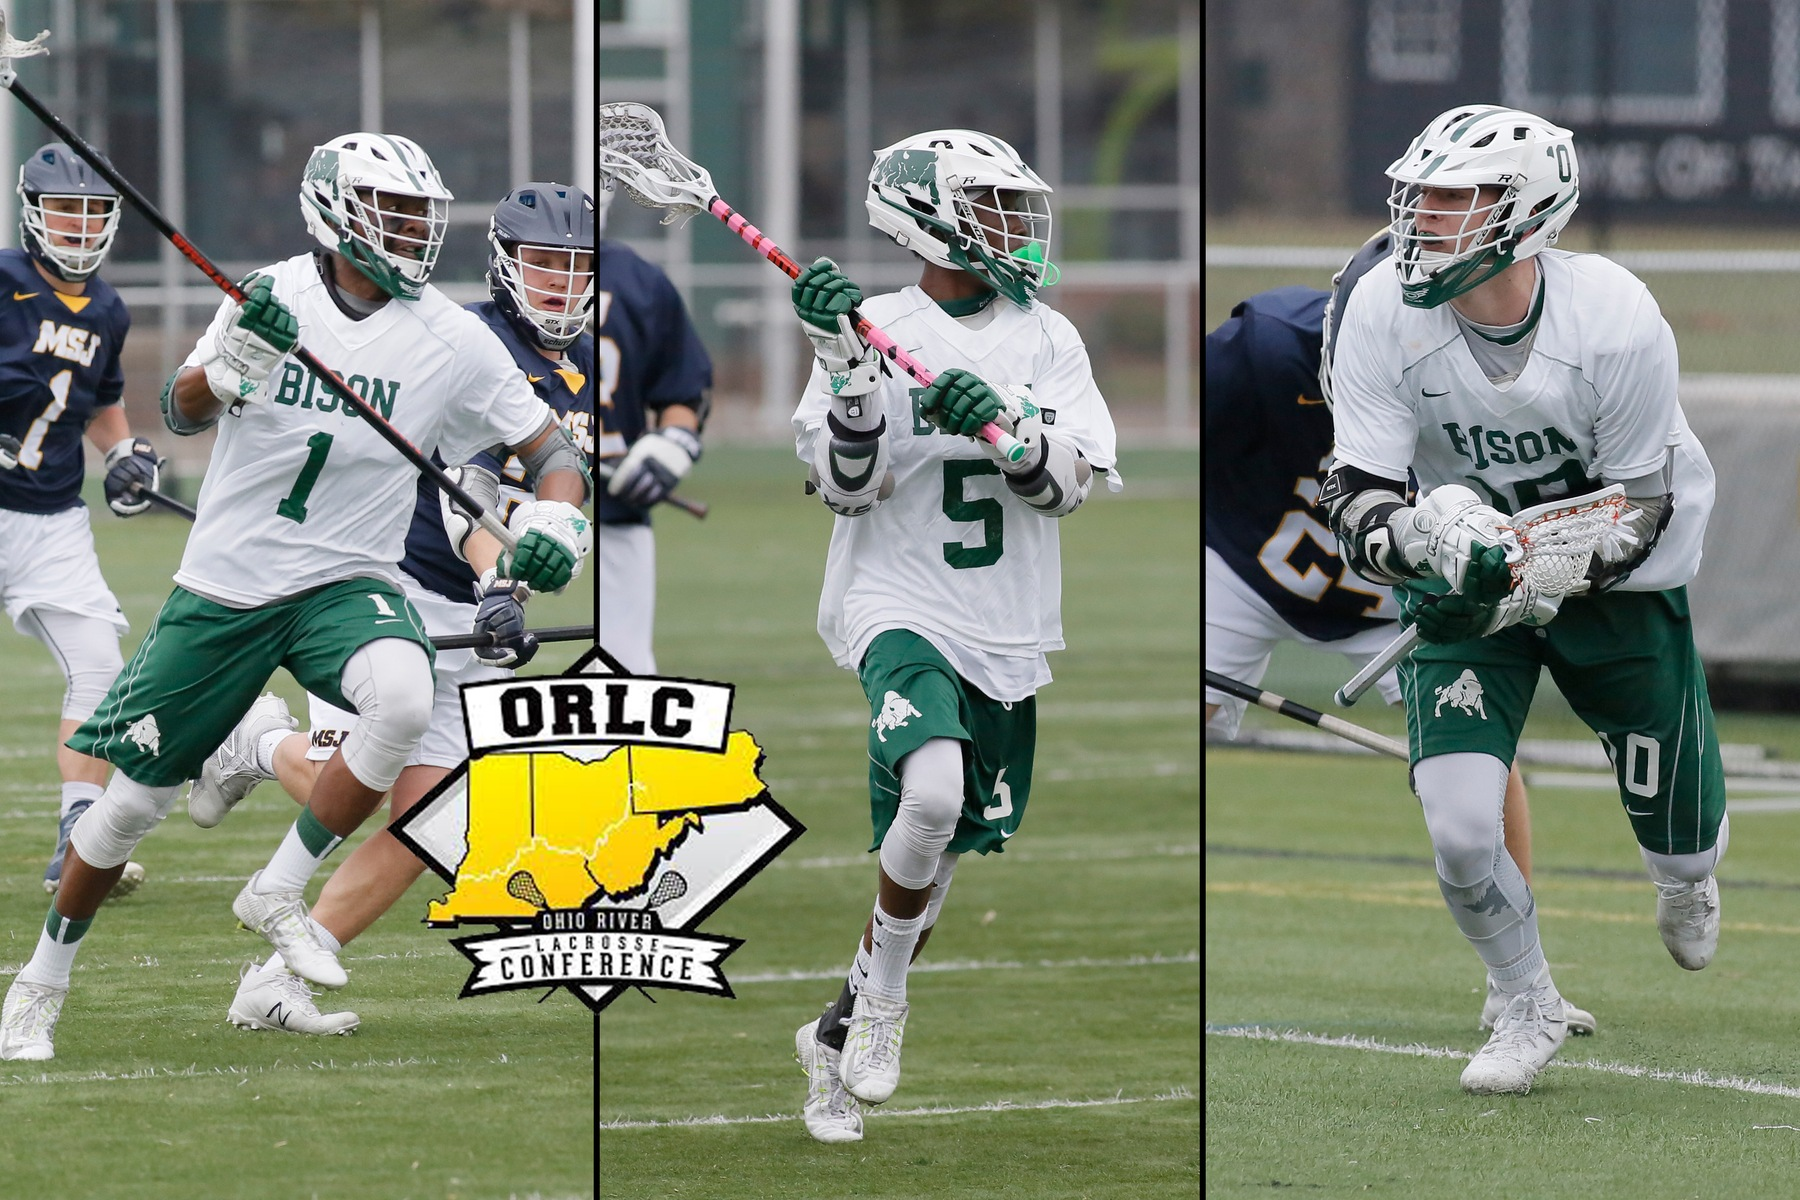 Men's lacrosse places six on All-ORLC teams